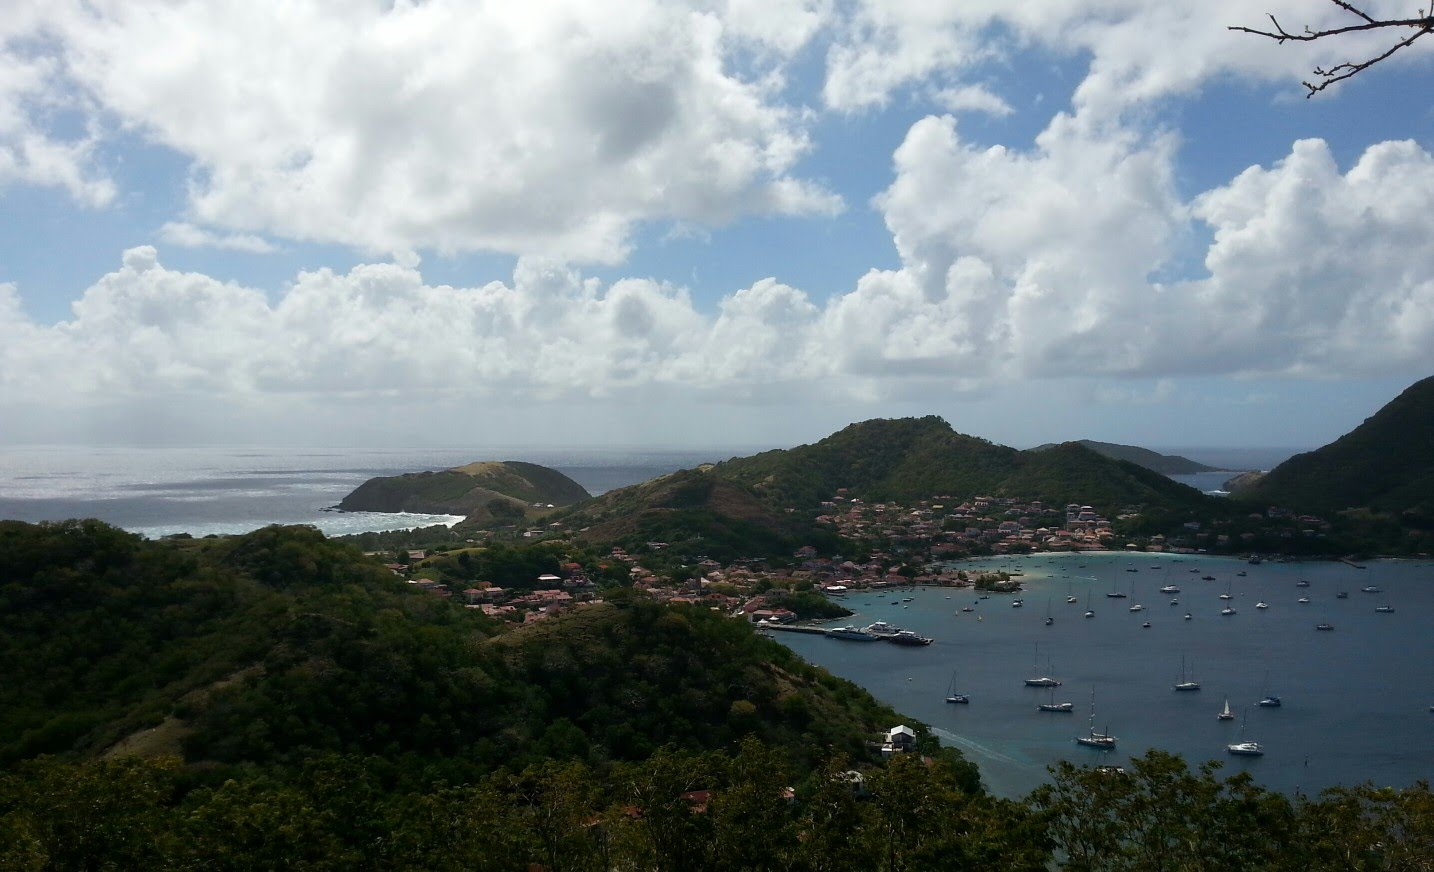 Explore The Beauty Of Caribbean: Sailing In The Caribbean. Guadeloupe, Les Saintes 2016